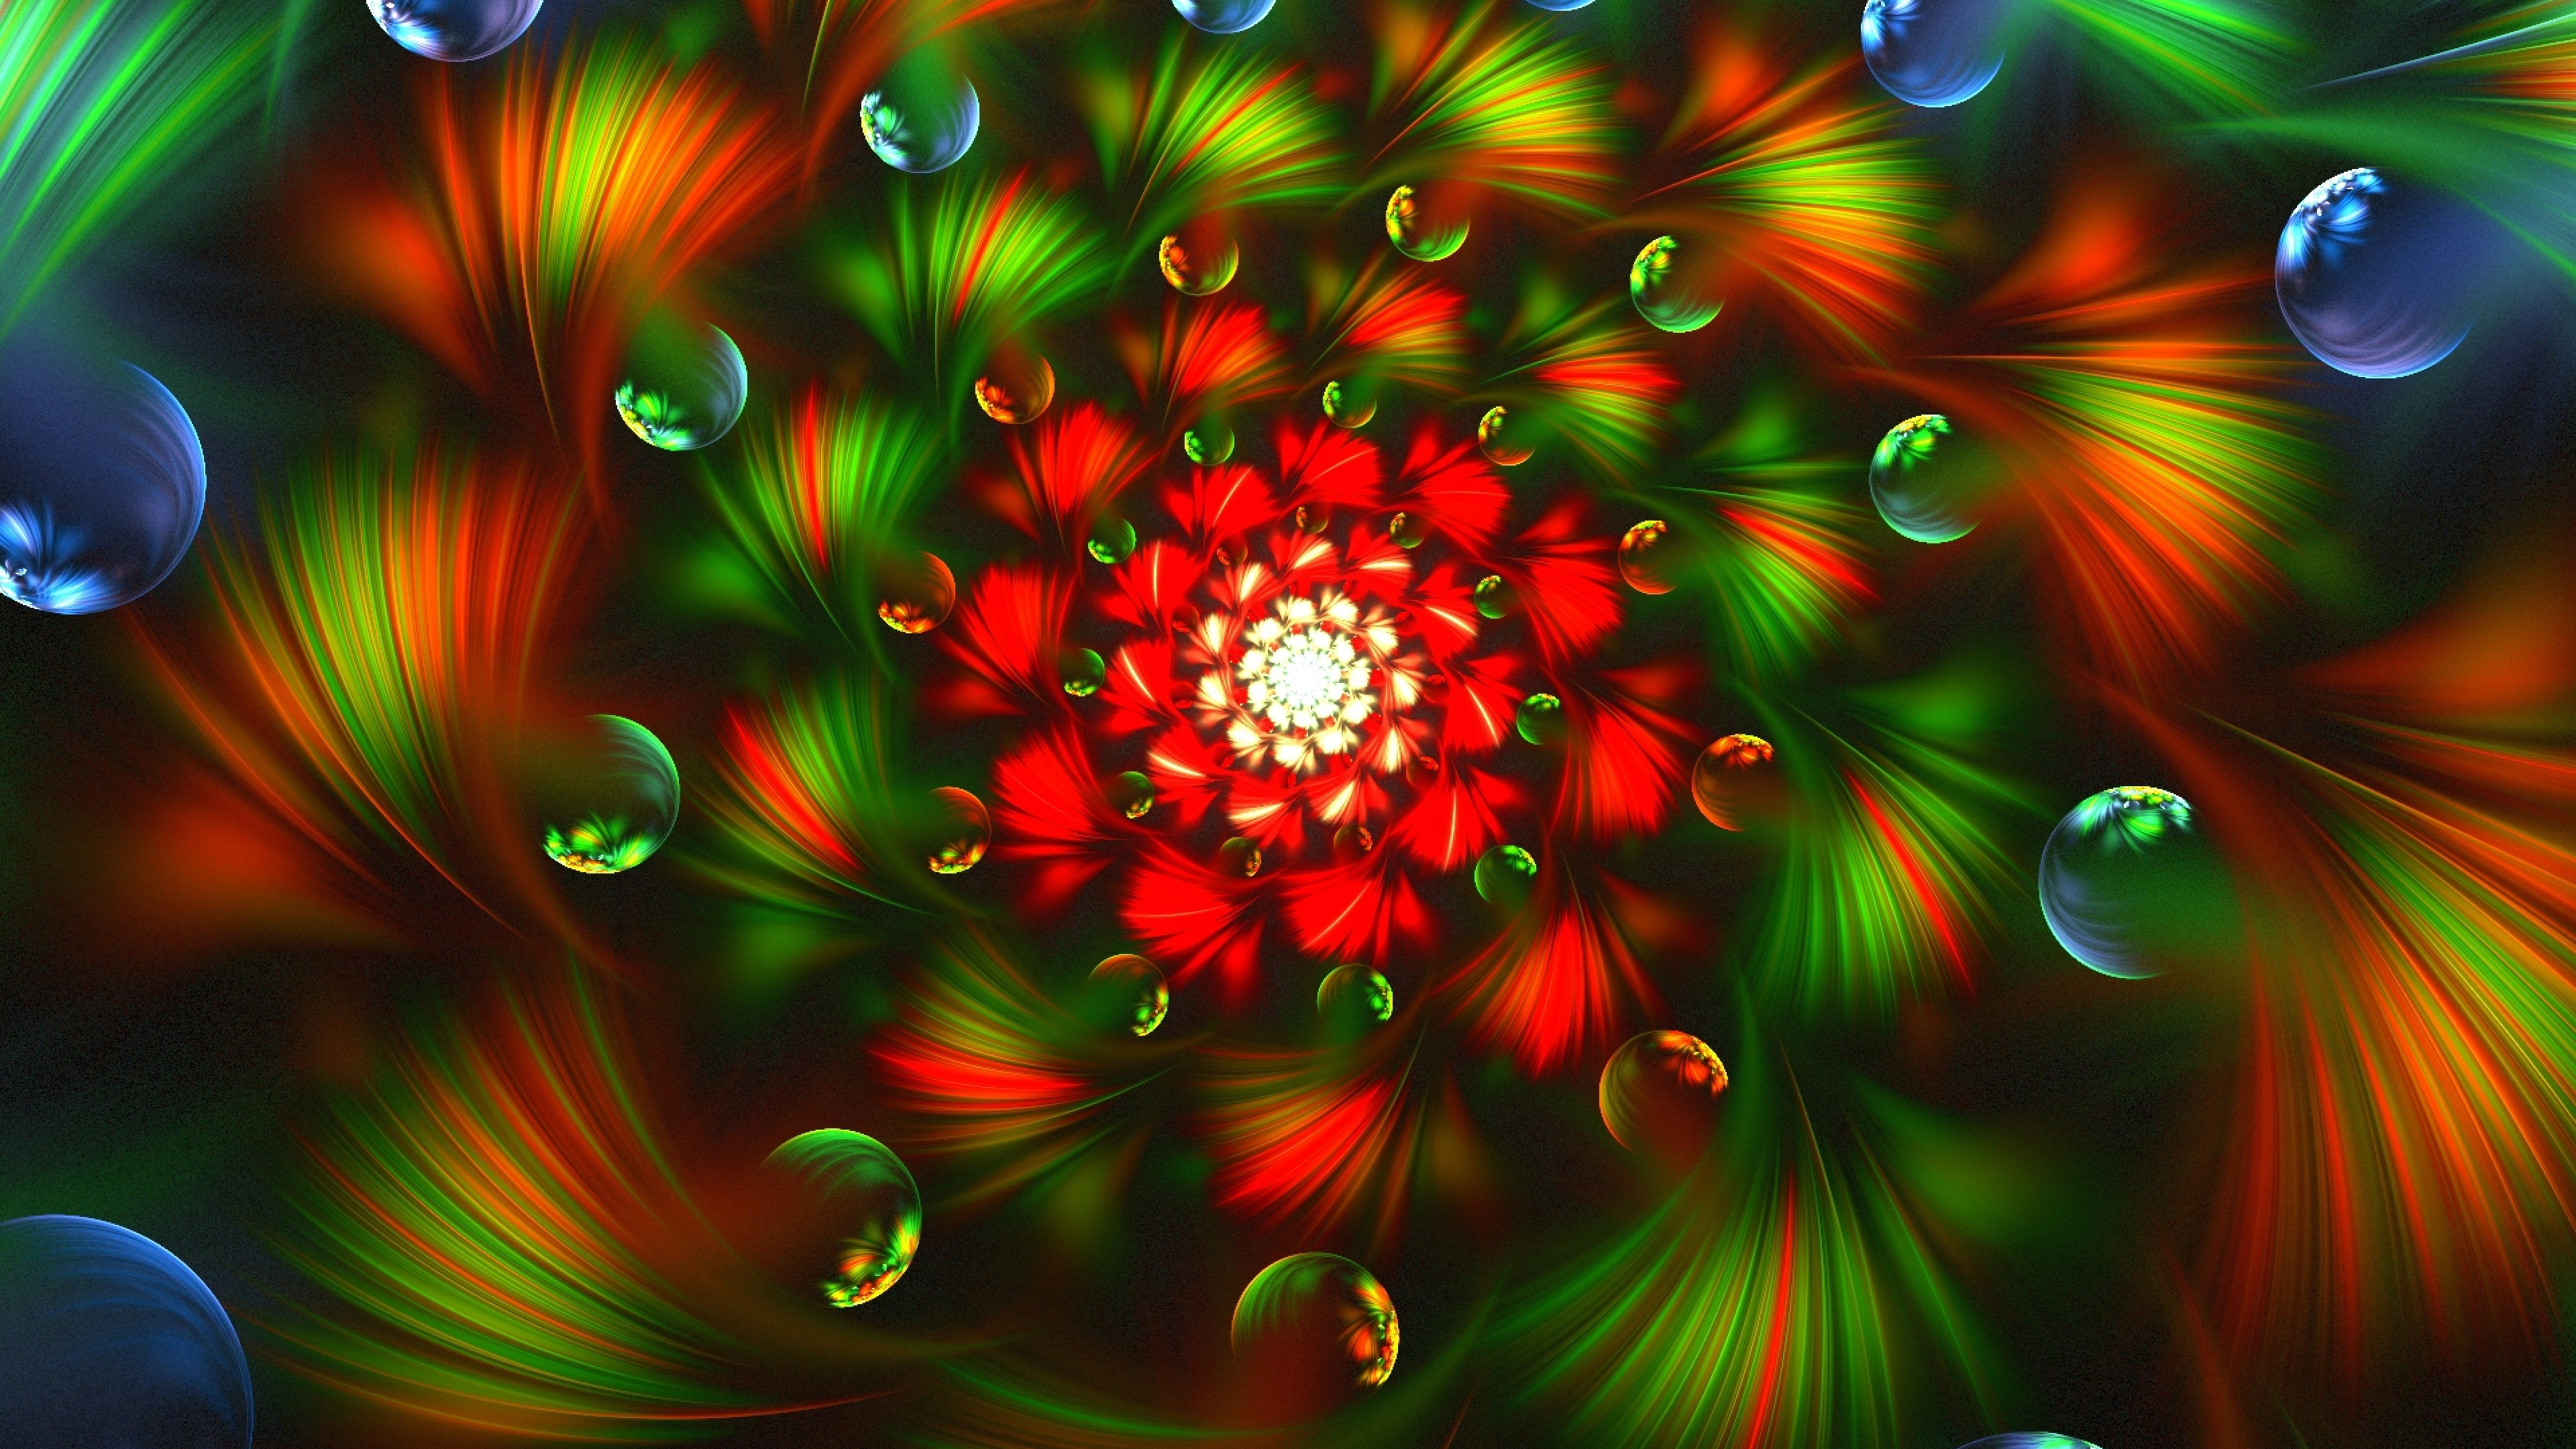 Abstract Fractal Colorful Bright Wallpaper Background 4K Ultra HD 3840x2160